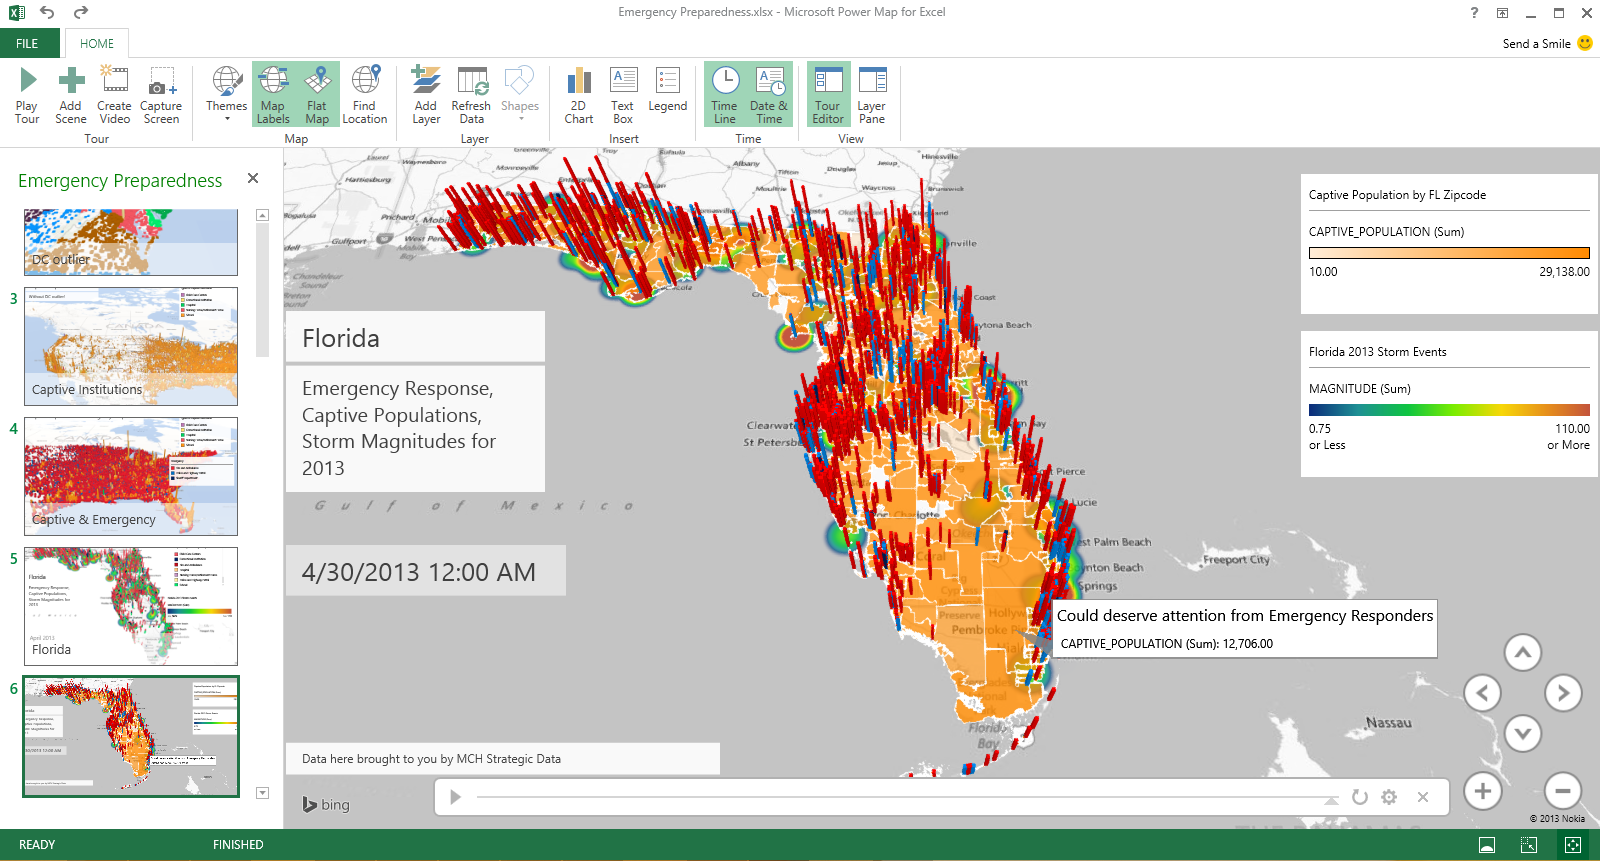 Ediblewildsus  Winning Power Map For Excel Now Generally Available Automatically Updated  With Interesting Power Map For Excel Now Generally Available Automatically Updated For Office  With Cute What If Statements Excel Also Microsoft Excel Vba Tutorial In Addition Formula Text Excel And Microsoft Excel Insert Row As Well As Excel Merge First And Last Name Additionally Calculating Yield To Maturity In Excel From Powerbimicrosoftcom With Ediblewildsus  Interesting Power Map For Excel Now Generally Available Automatically Updated  With Cute Power Map For Excel Now Generally Available Automatically Updated For Office  And Winning What If Statements Excel Also Microsoft Excel Vba Tutorial In Addition Formula Text Excel From Powerbimicrosoftcom